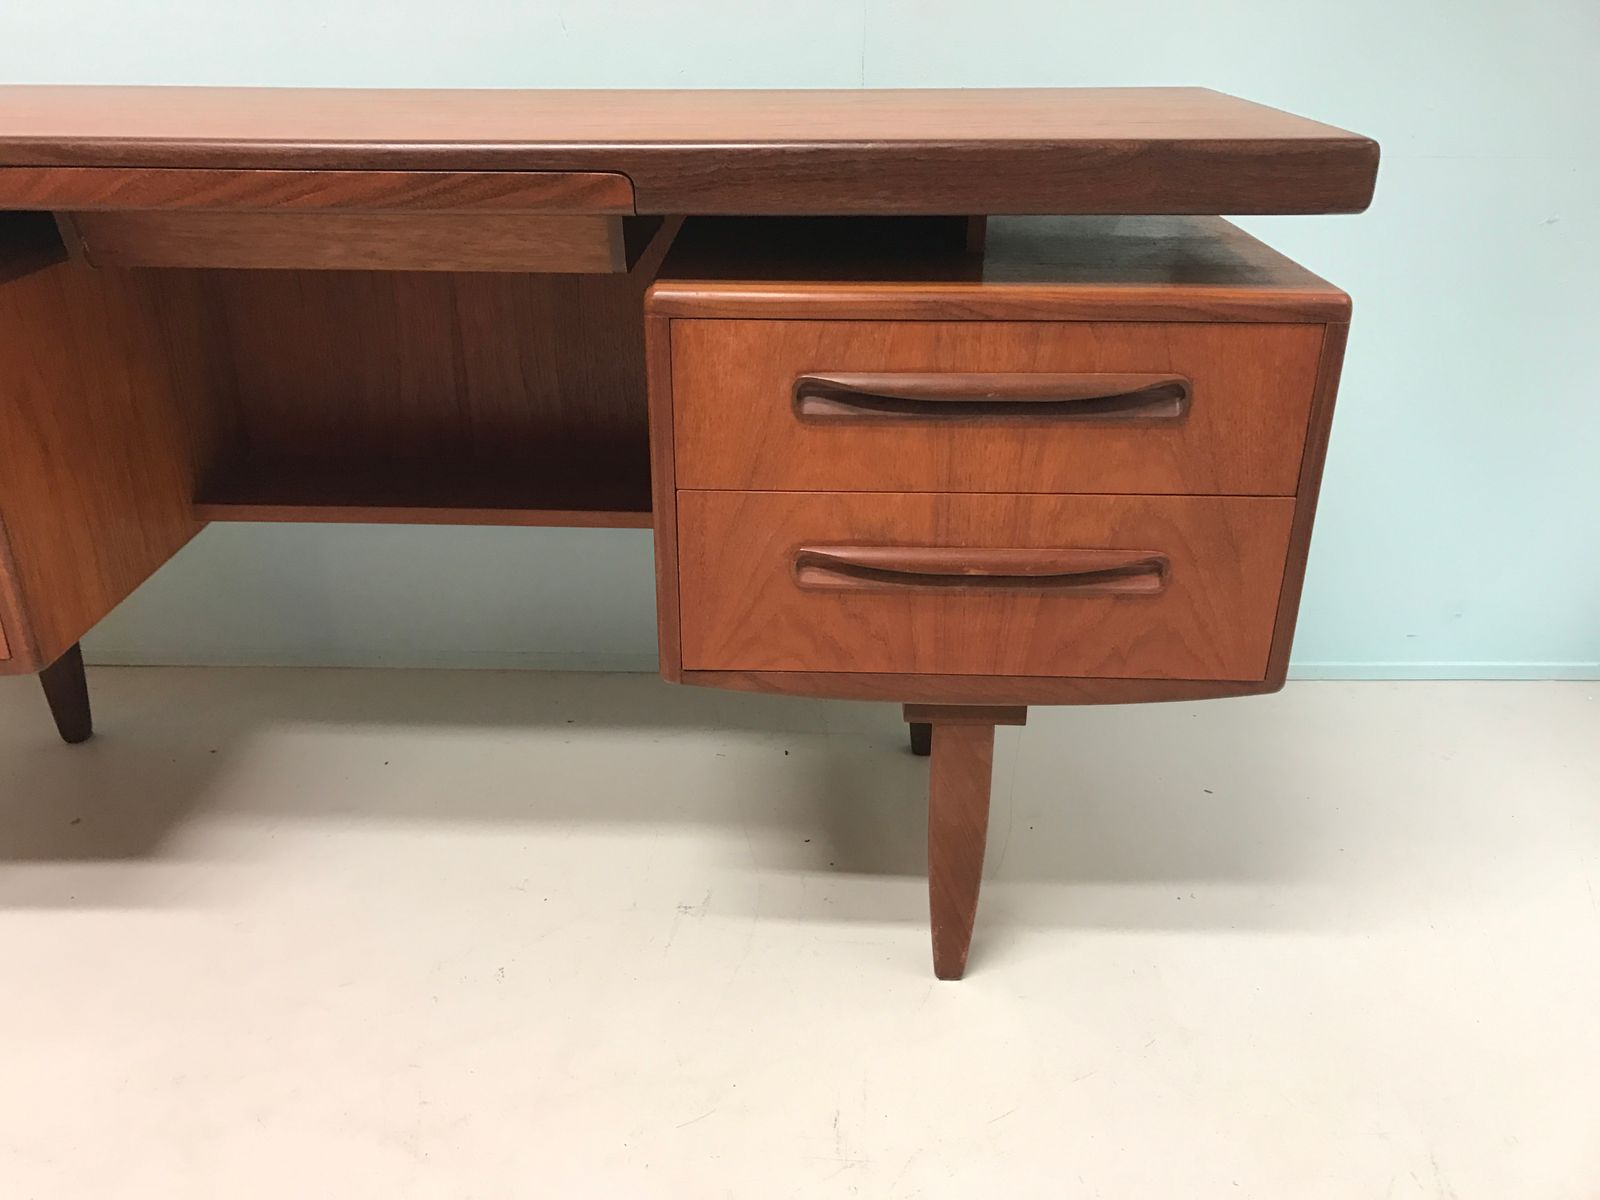 Desk with Teak Handles by V Wilkins for G Plan 1960s for sale at